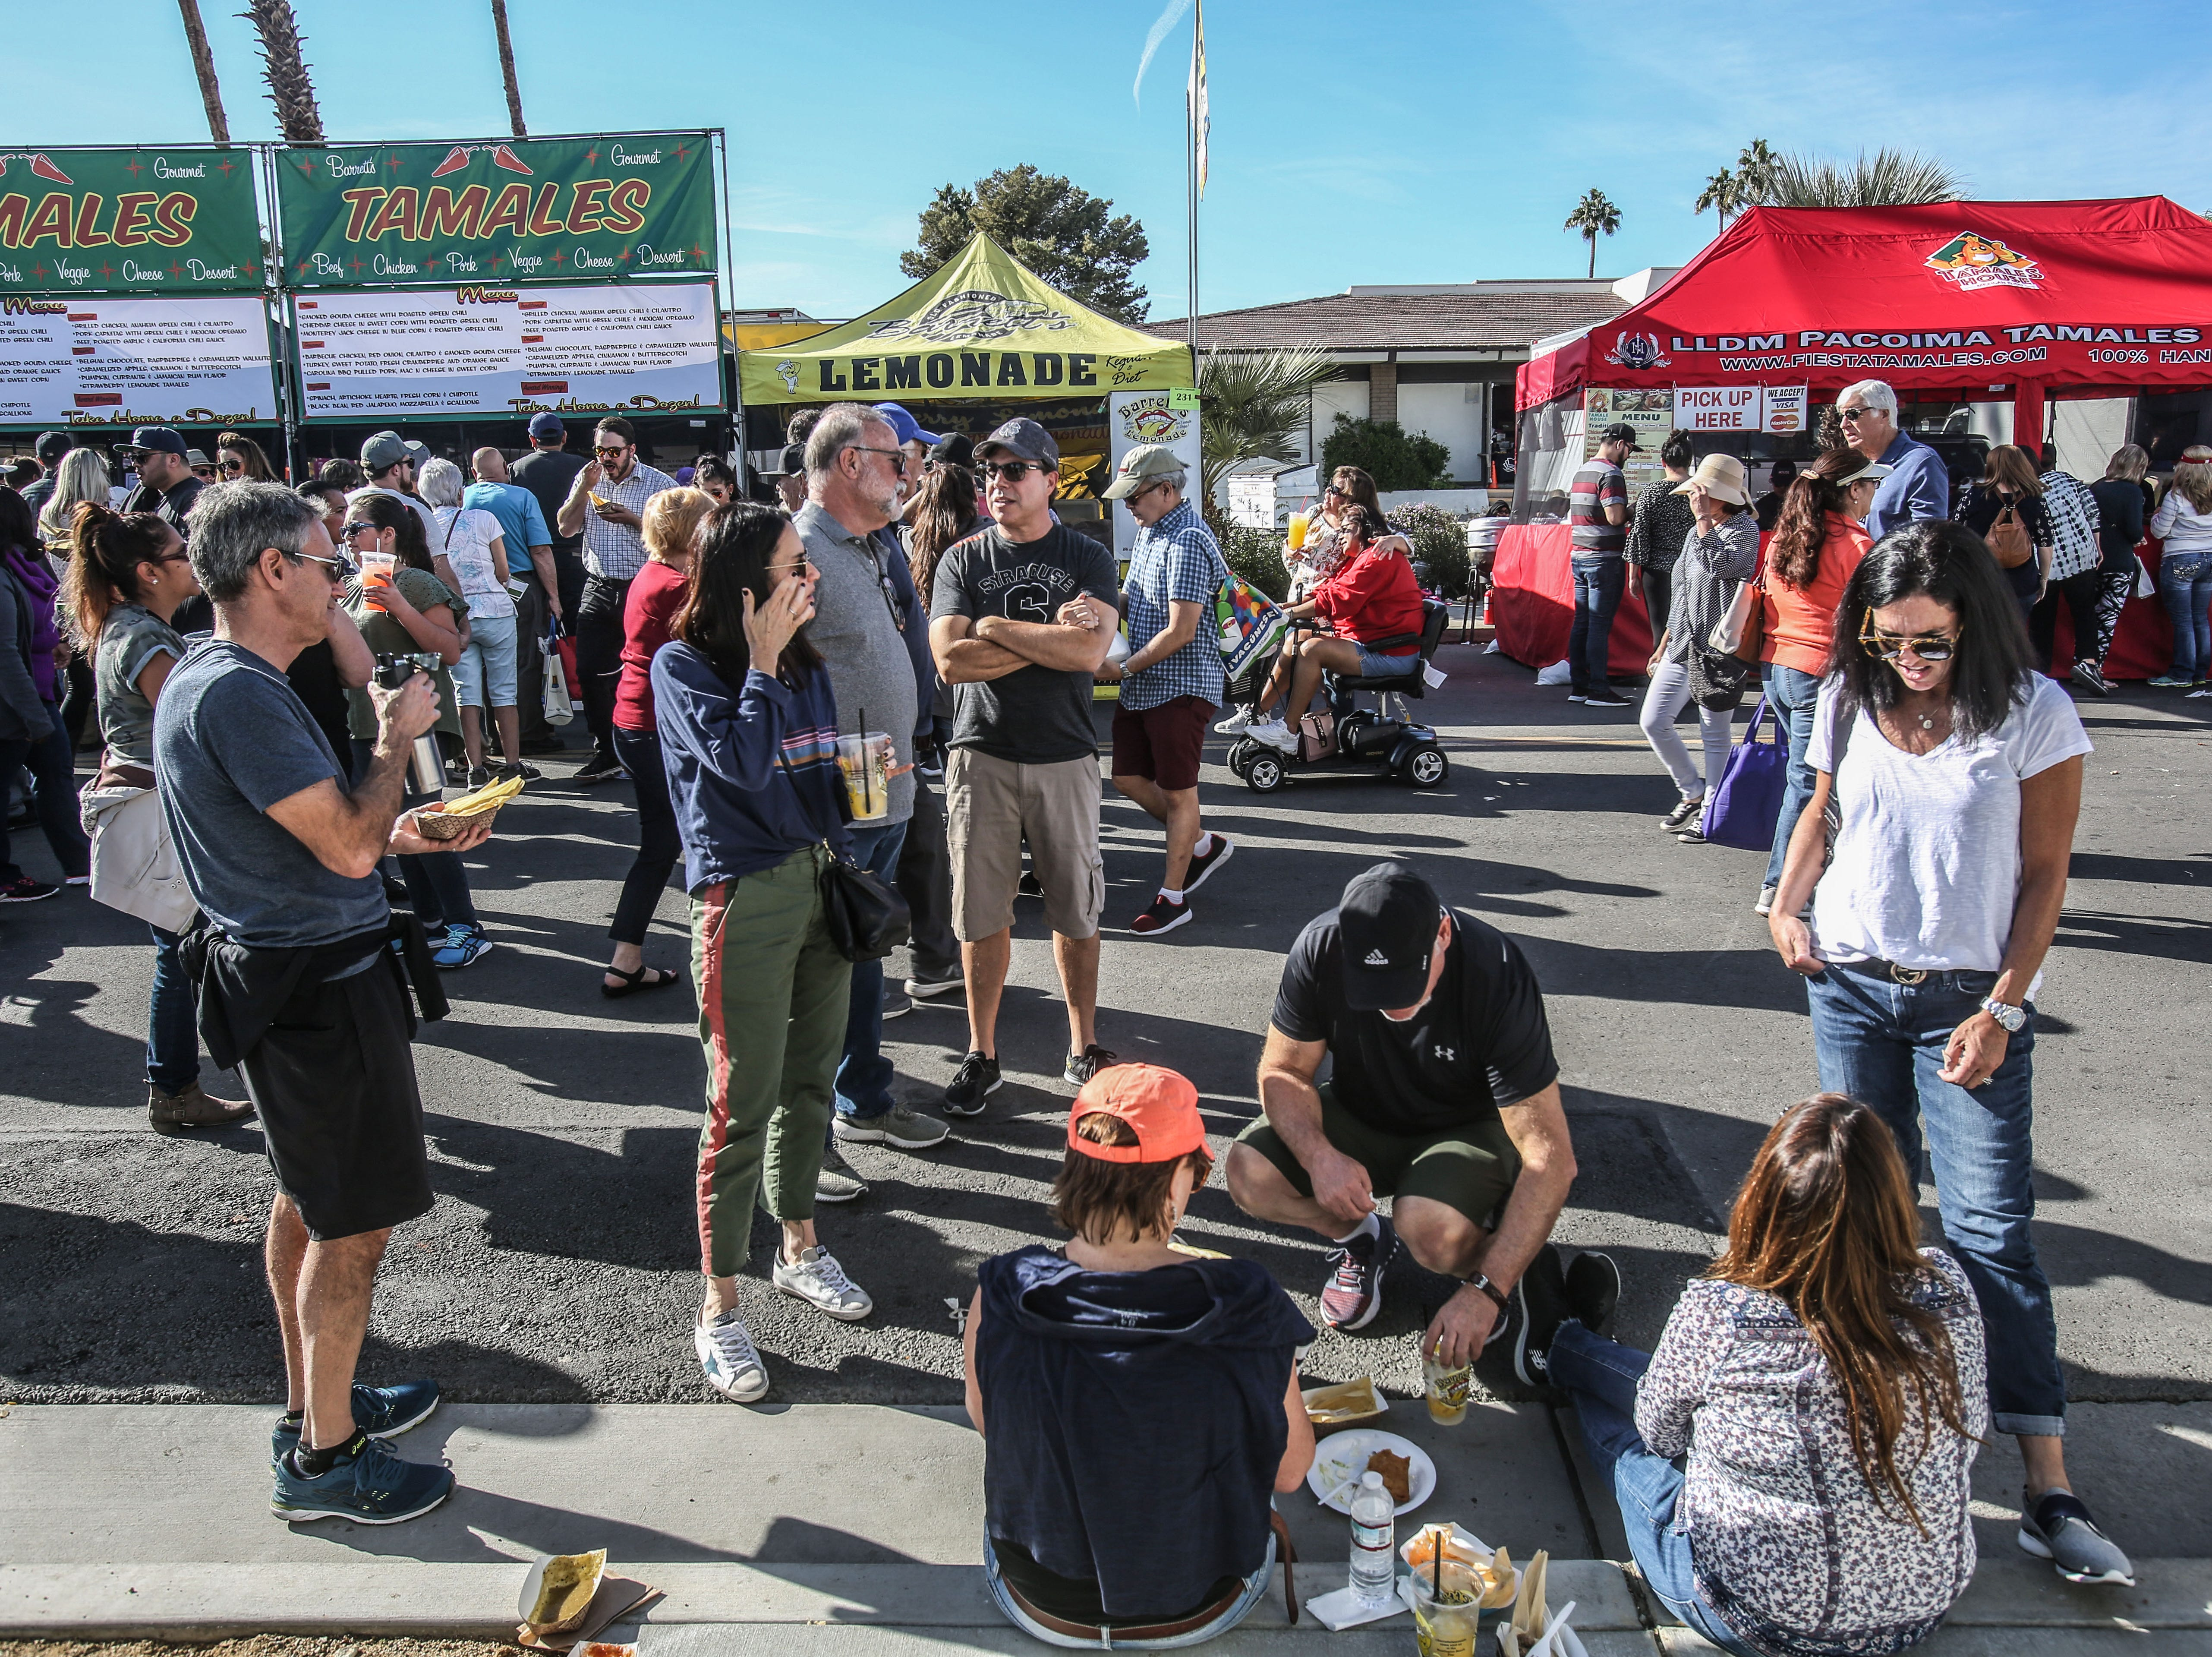 People eating tamales on the street on Saturday, December 1, 2018 during annual Indio Tamales Festival.